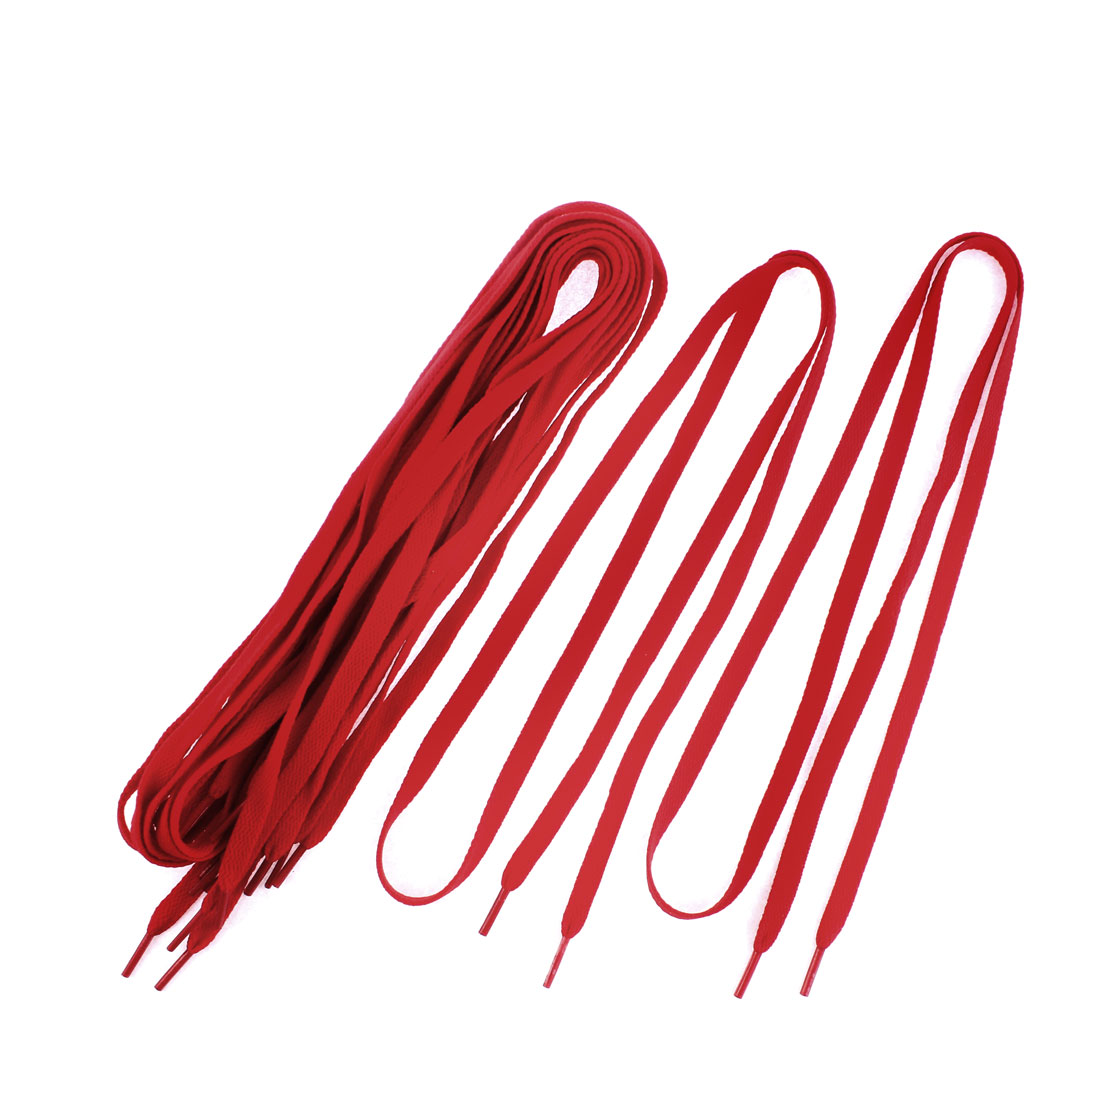 "Athletic Sports Sneaker Flat Shoelace Strings Red 43"" Length 5 Pairs"